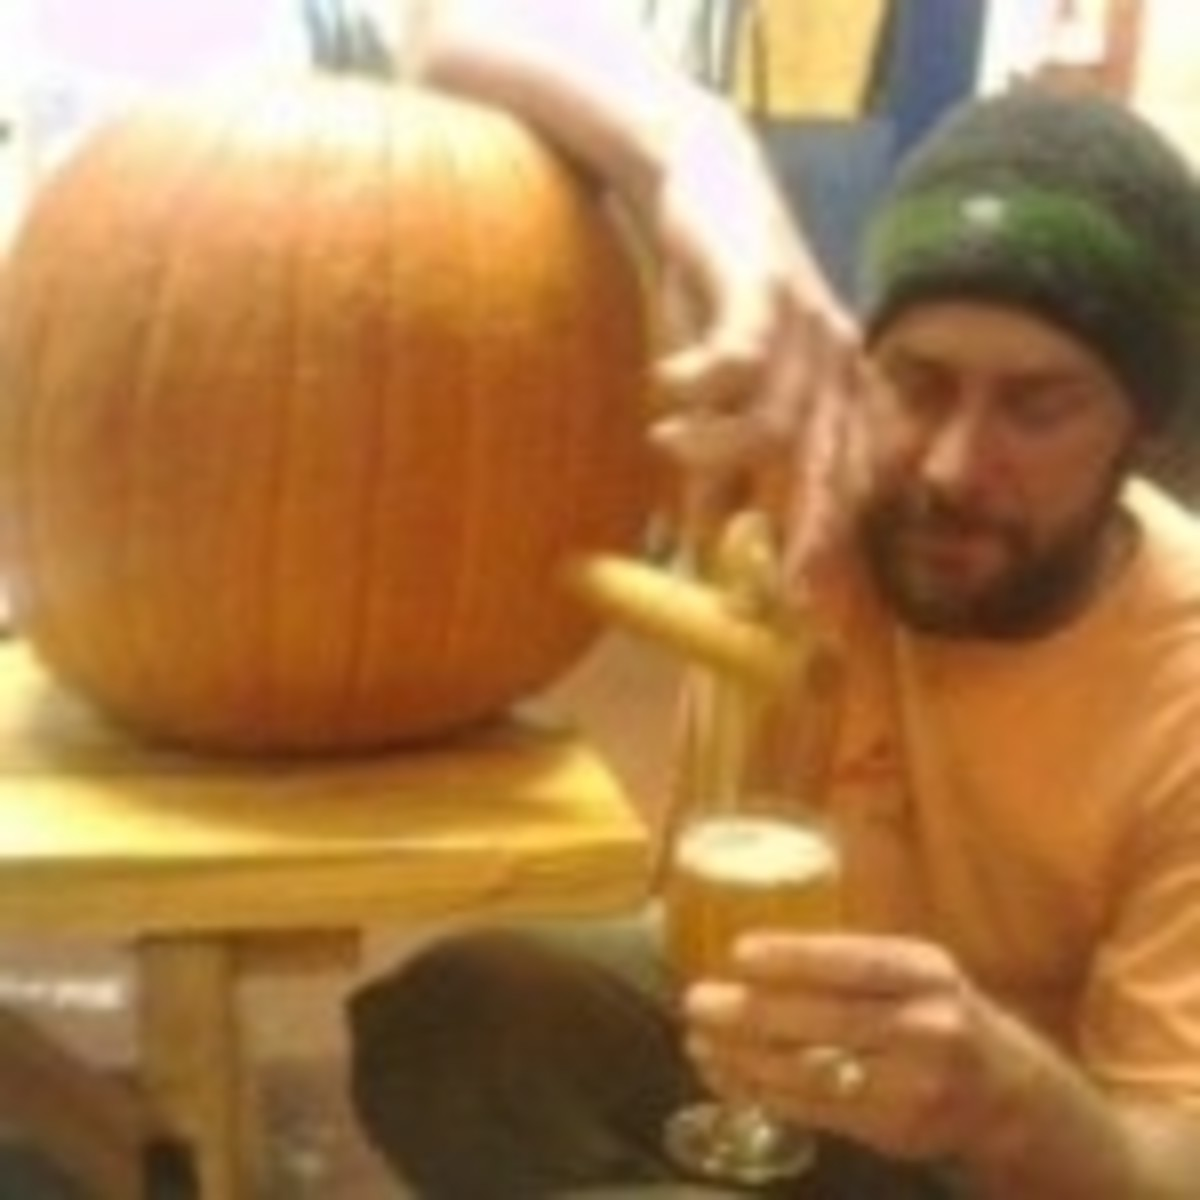 Jason McAdam drinking pumpkin beer from a pumpkin